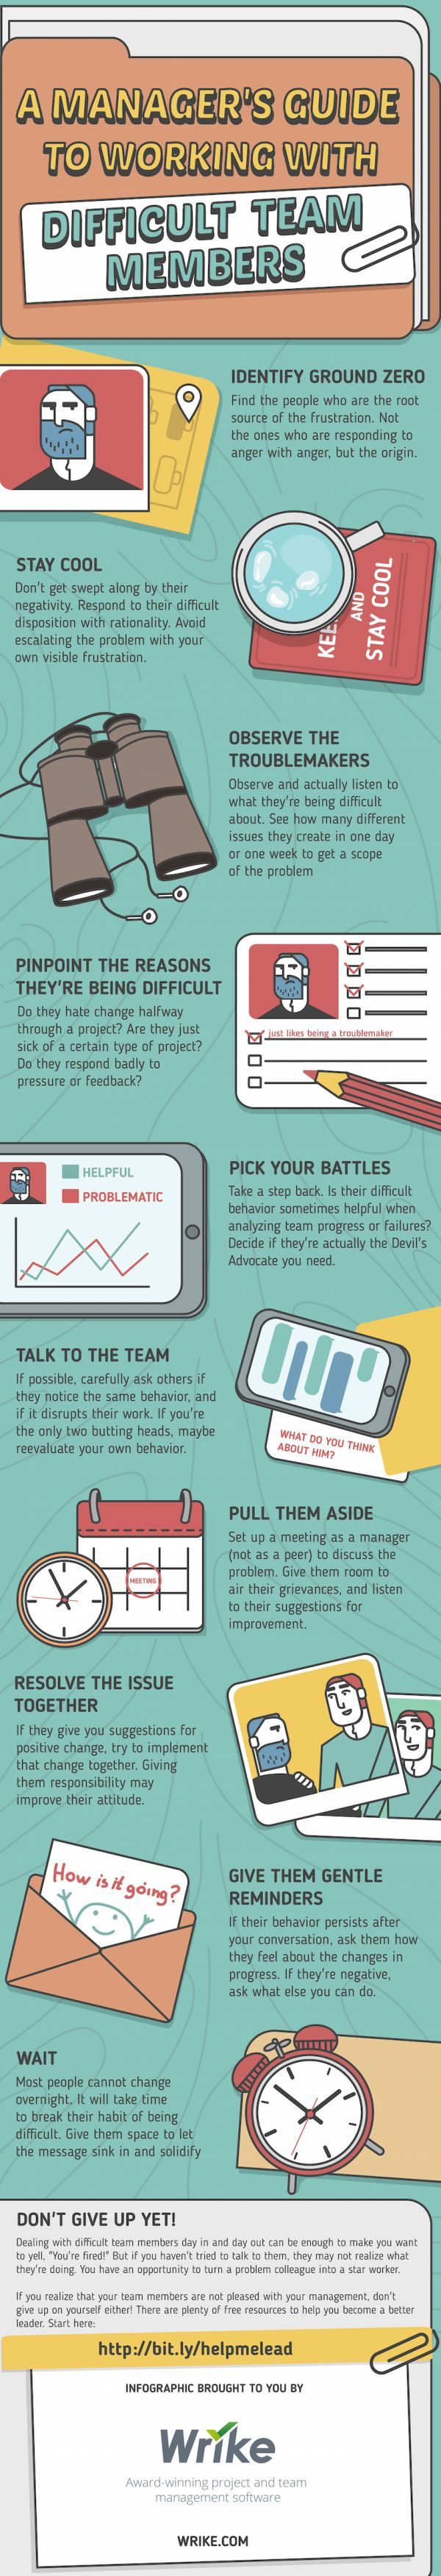 What Are 11 Tips For Managing Difficult Team Members? #infographic Wrike I look 4Ward to your feedback. Keep Digging for Worms! DR4WARD enjoys helping connect students and pros to learn about all forms of communication and creativity. He talks about, creates, and curates content on: Digital, Marketing, Advertising, Public Relations, Social Media, Journalism, Higher Ed, Innovation, Creativity, and Design. Curated global resources can be found here: https://www.rebelmouse.com/dr4...